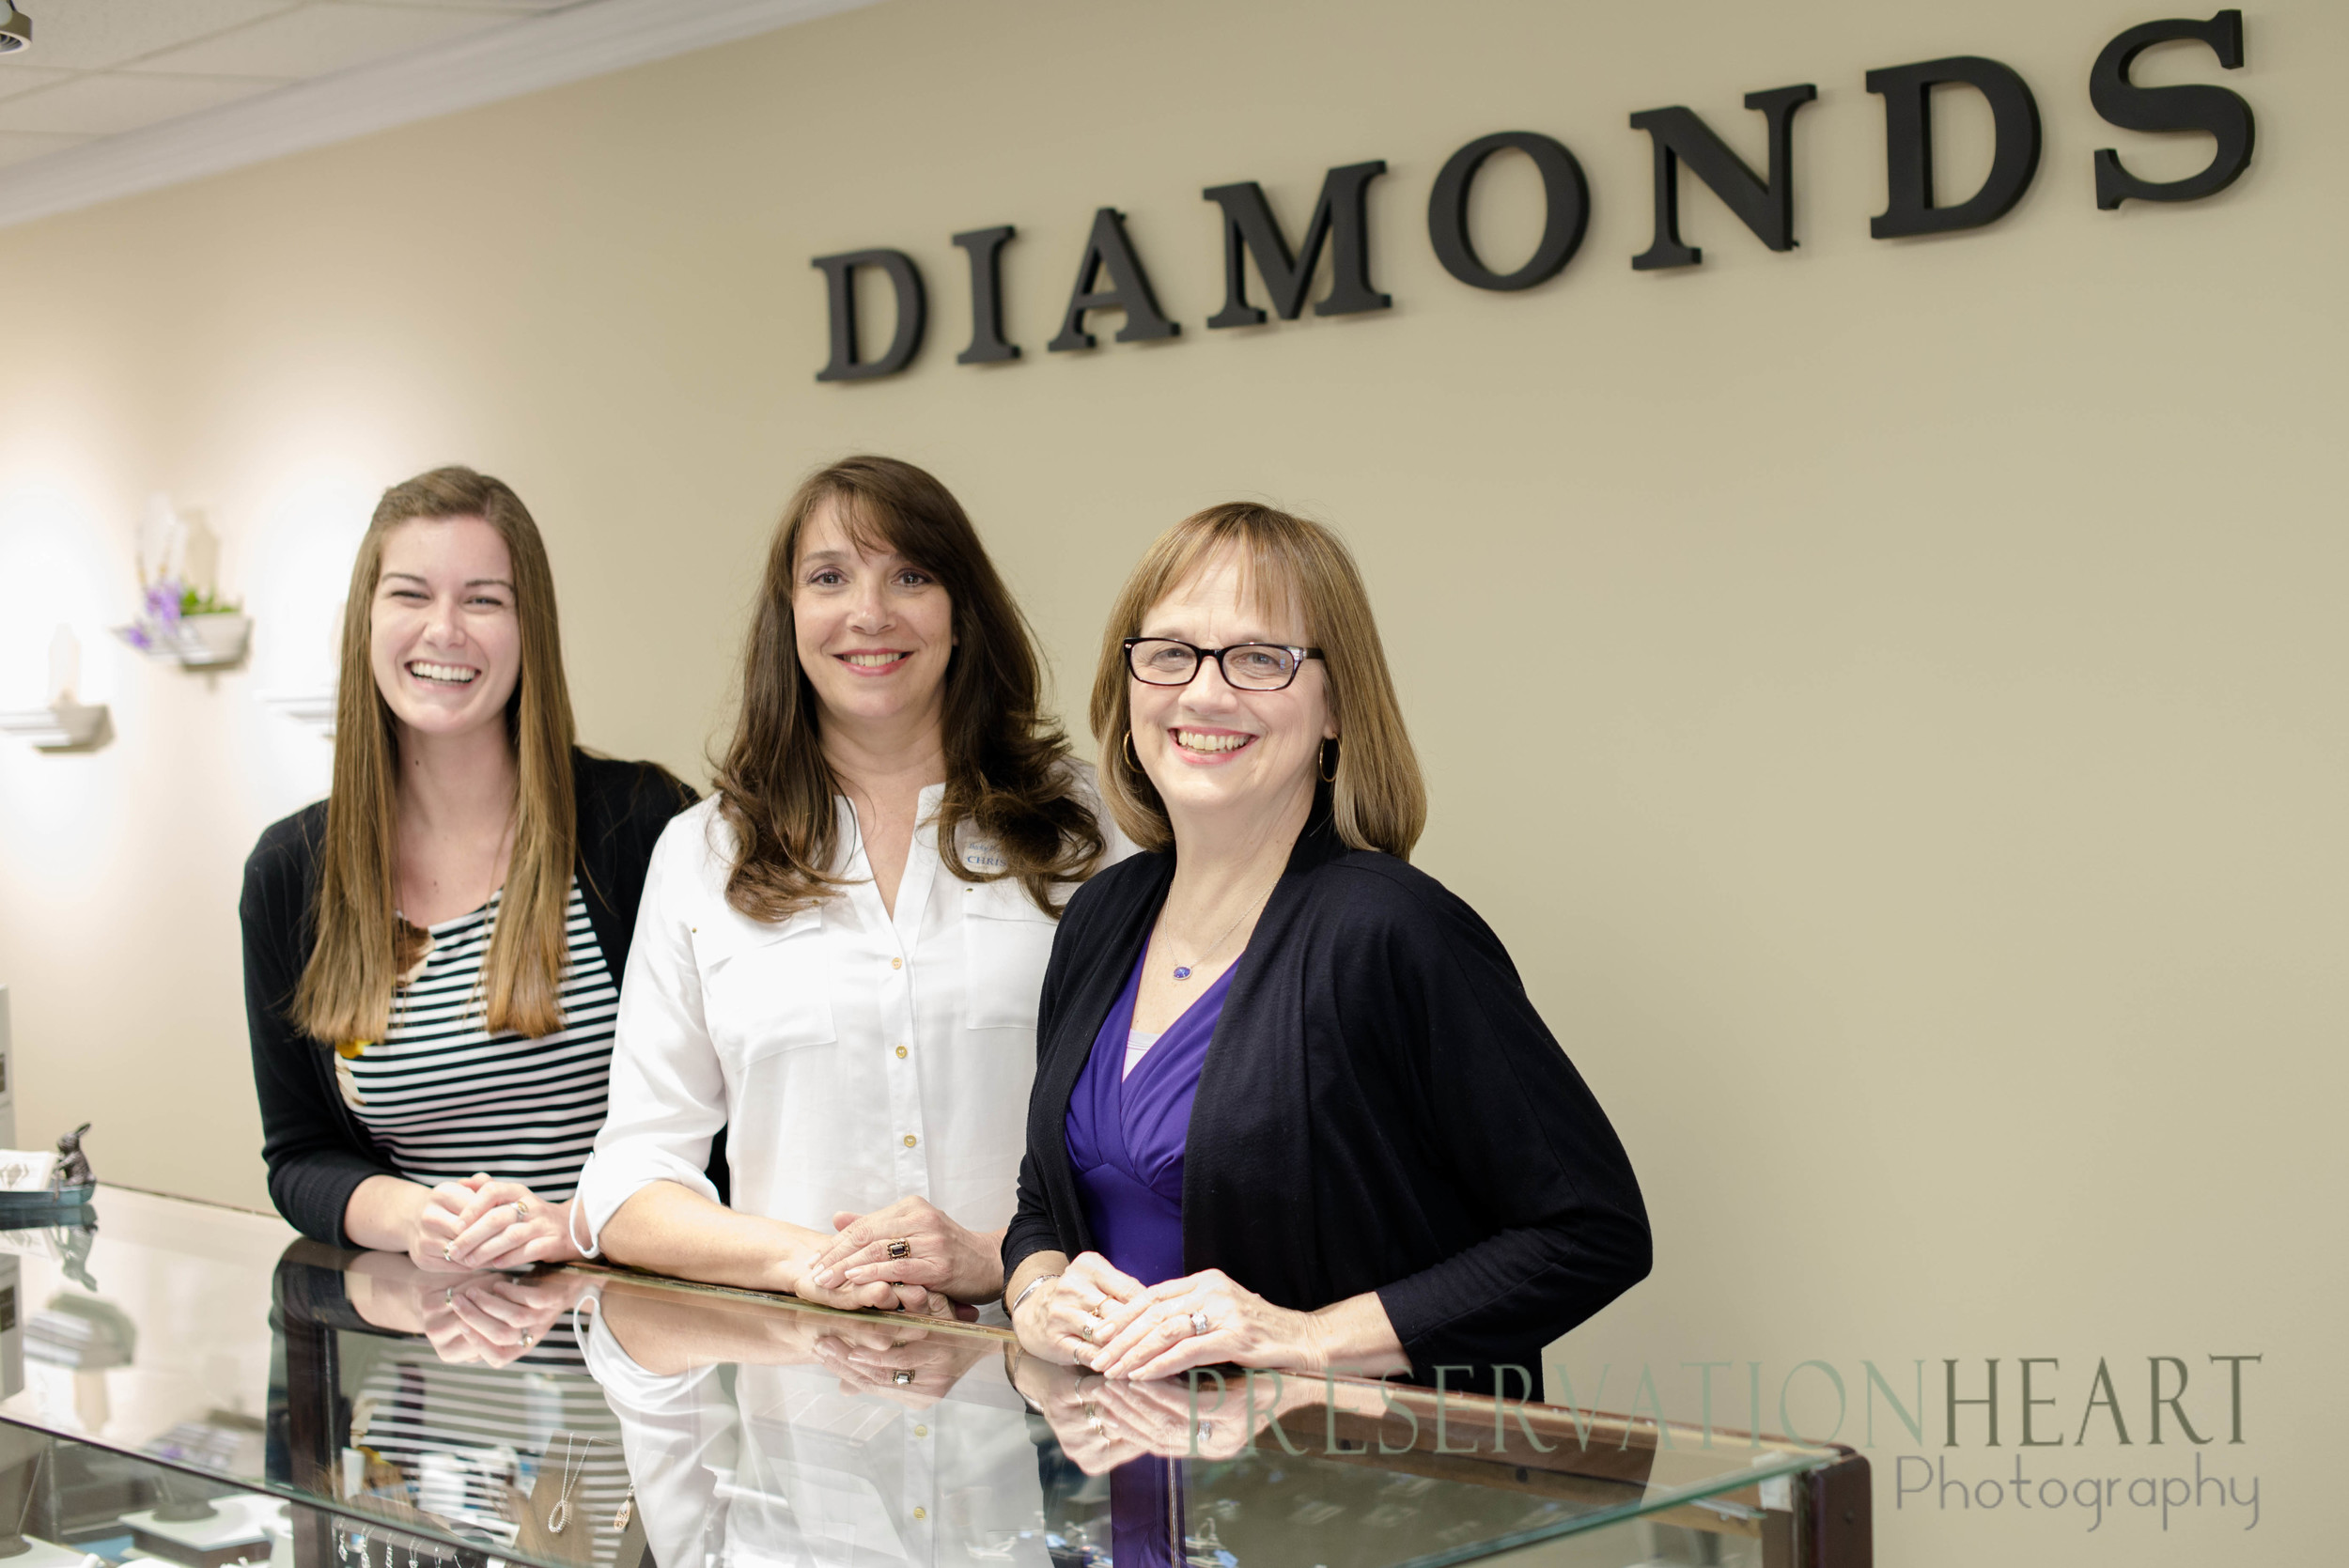 These ladies work hard and have a lot of fun helping each customer find just what they're looking for